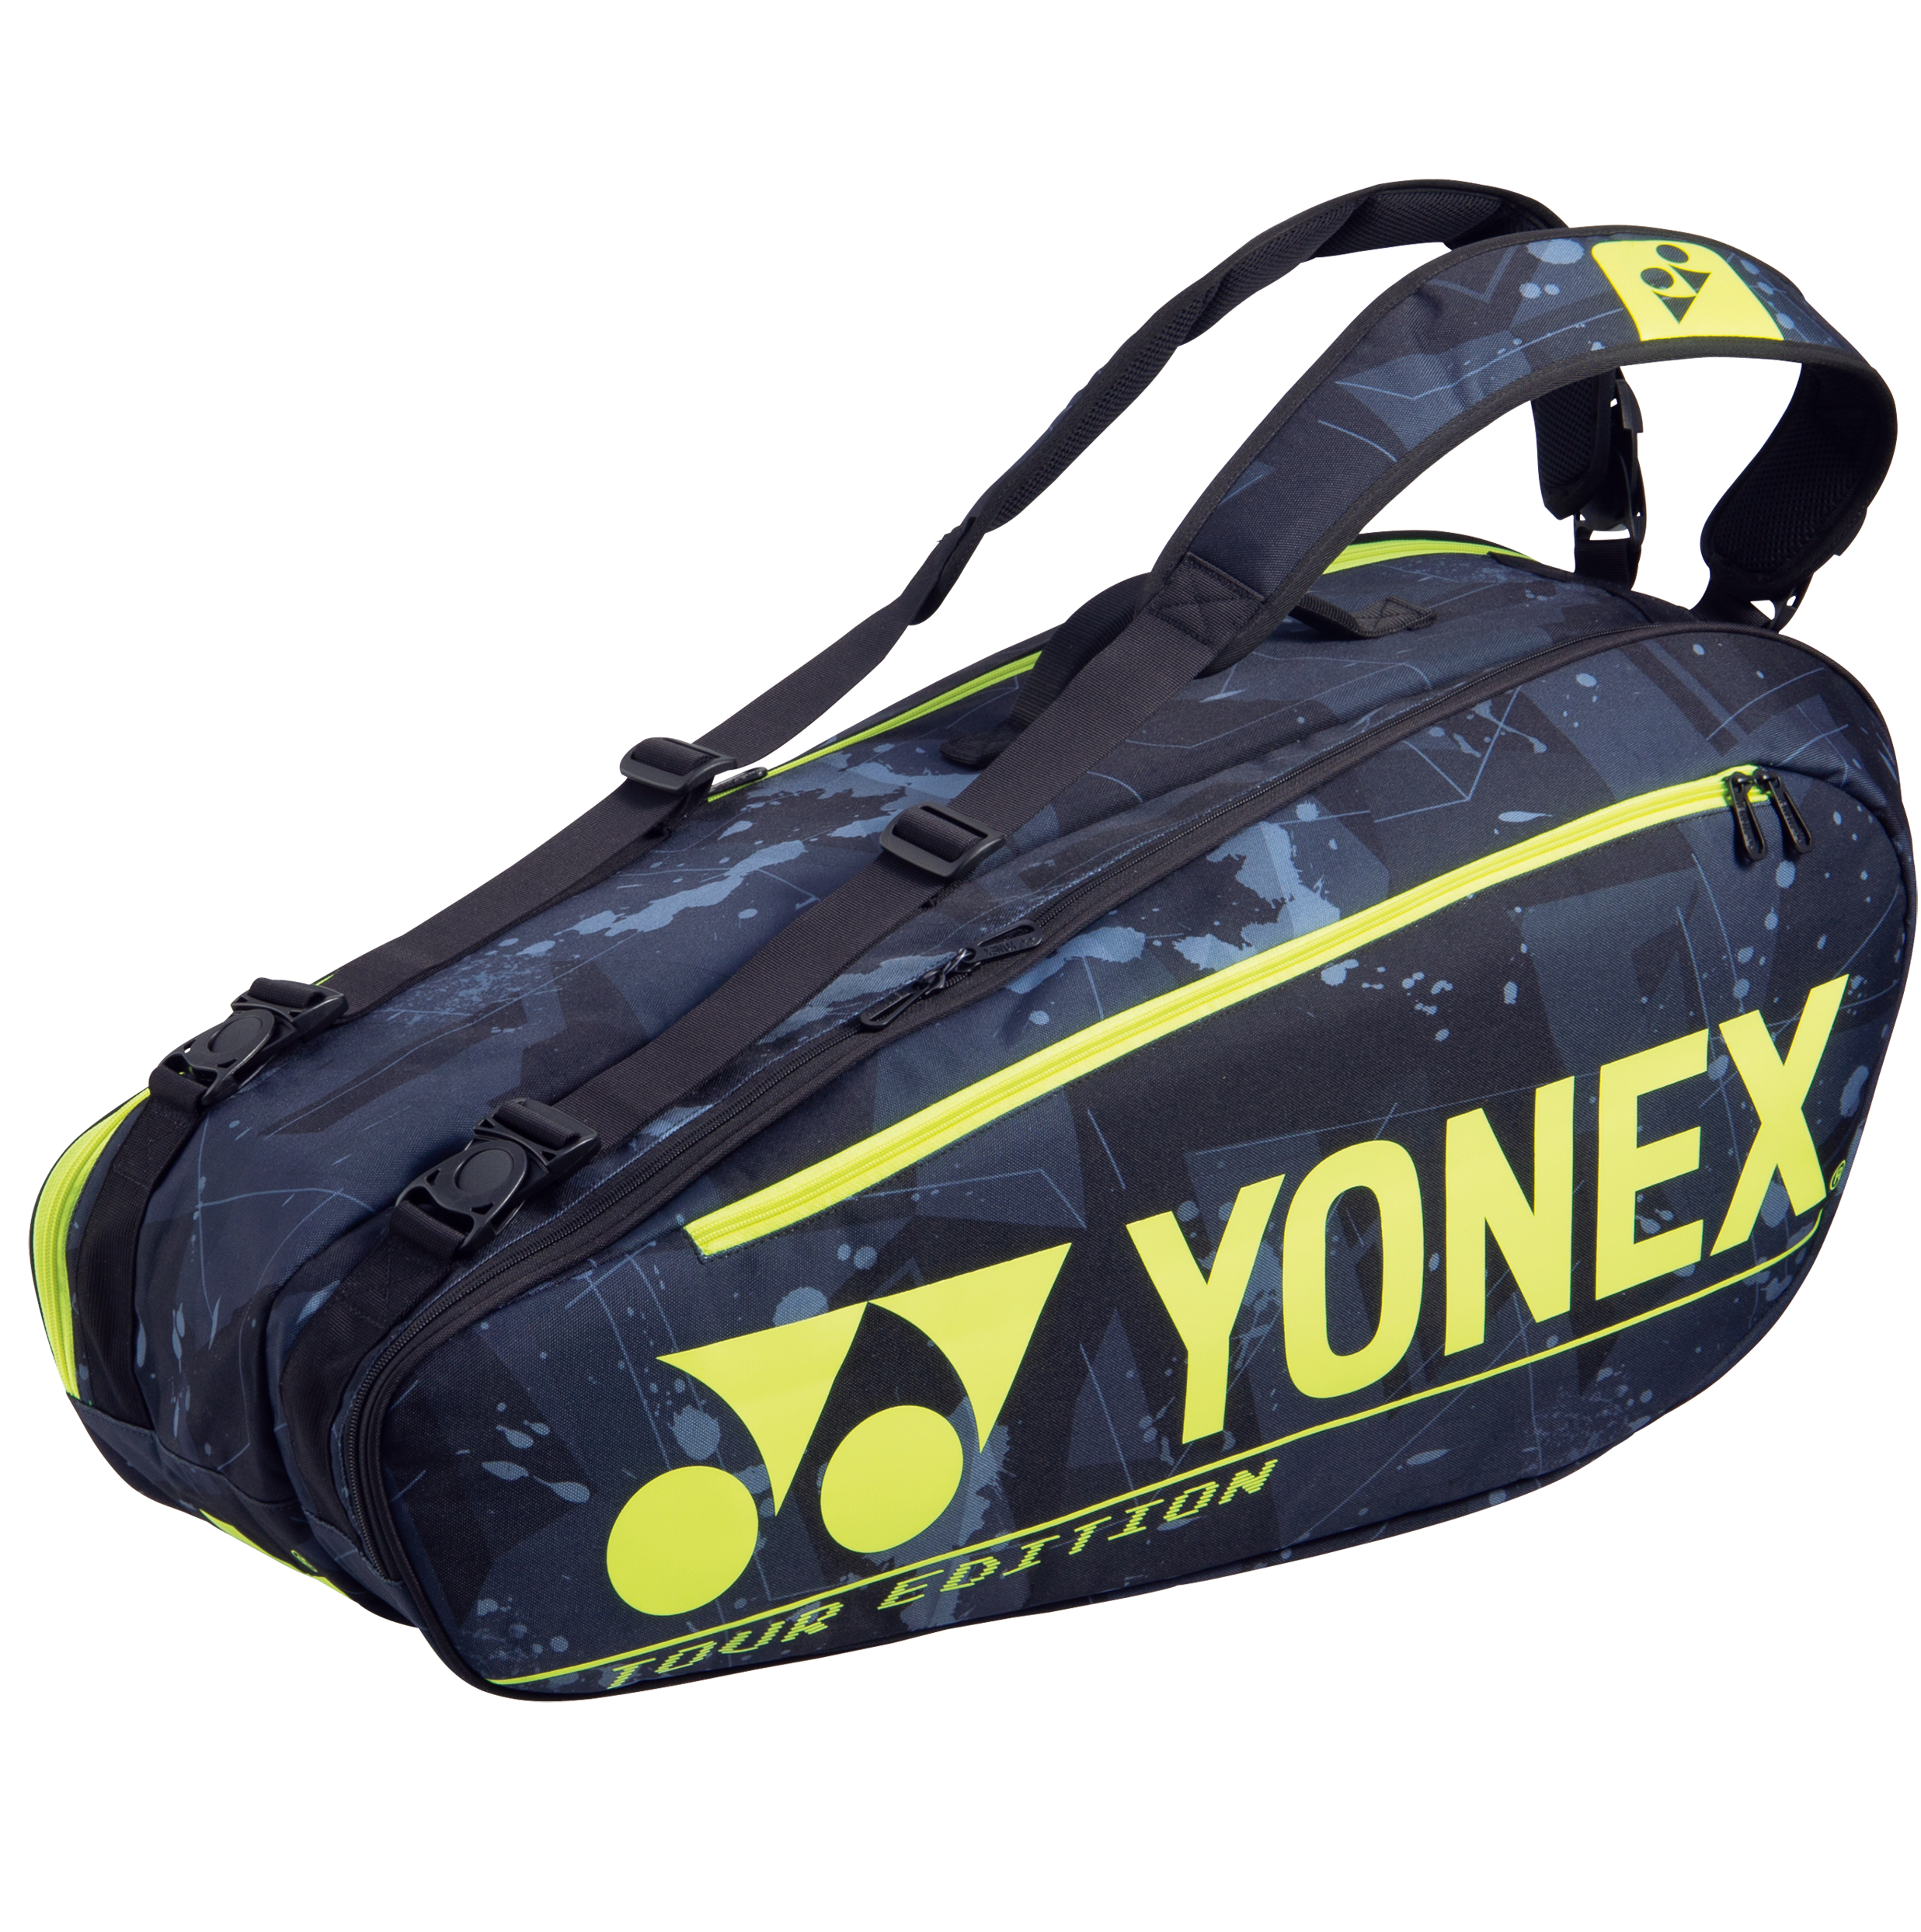 YONEX 6 Tennis/8+ Badminton Racquet Pro Tournament Bag BA92026EX, Black/Yellow, 2021 New